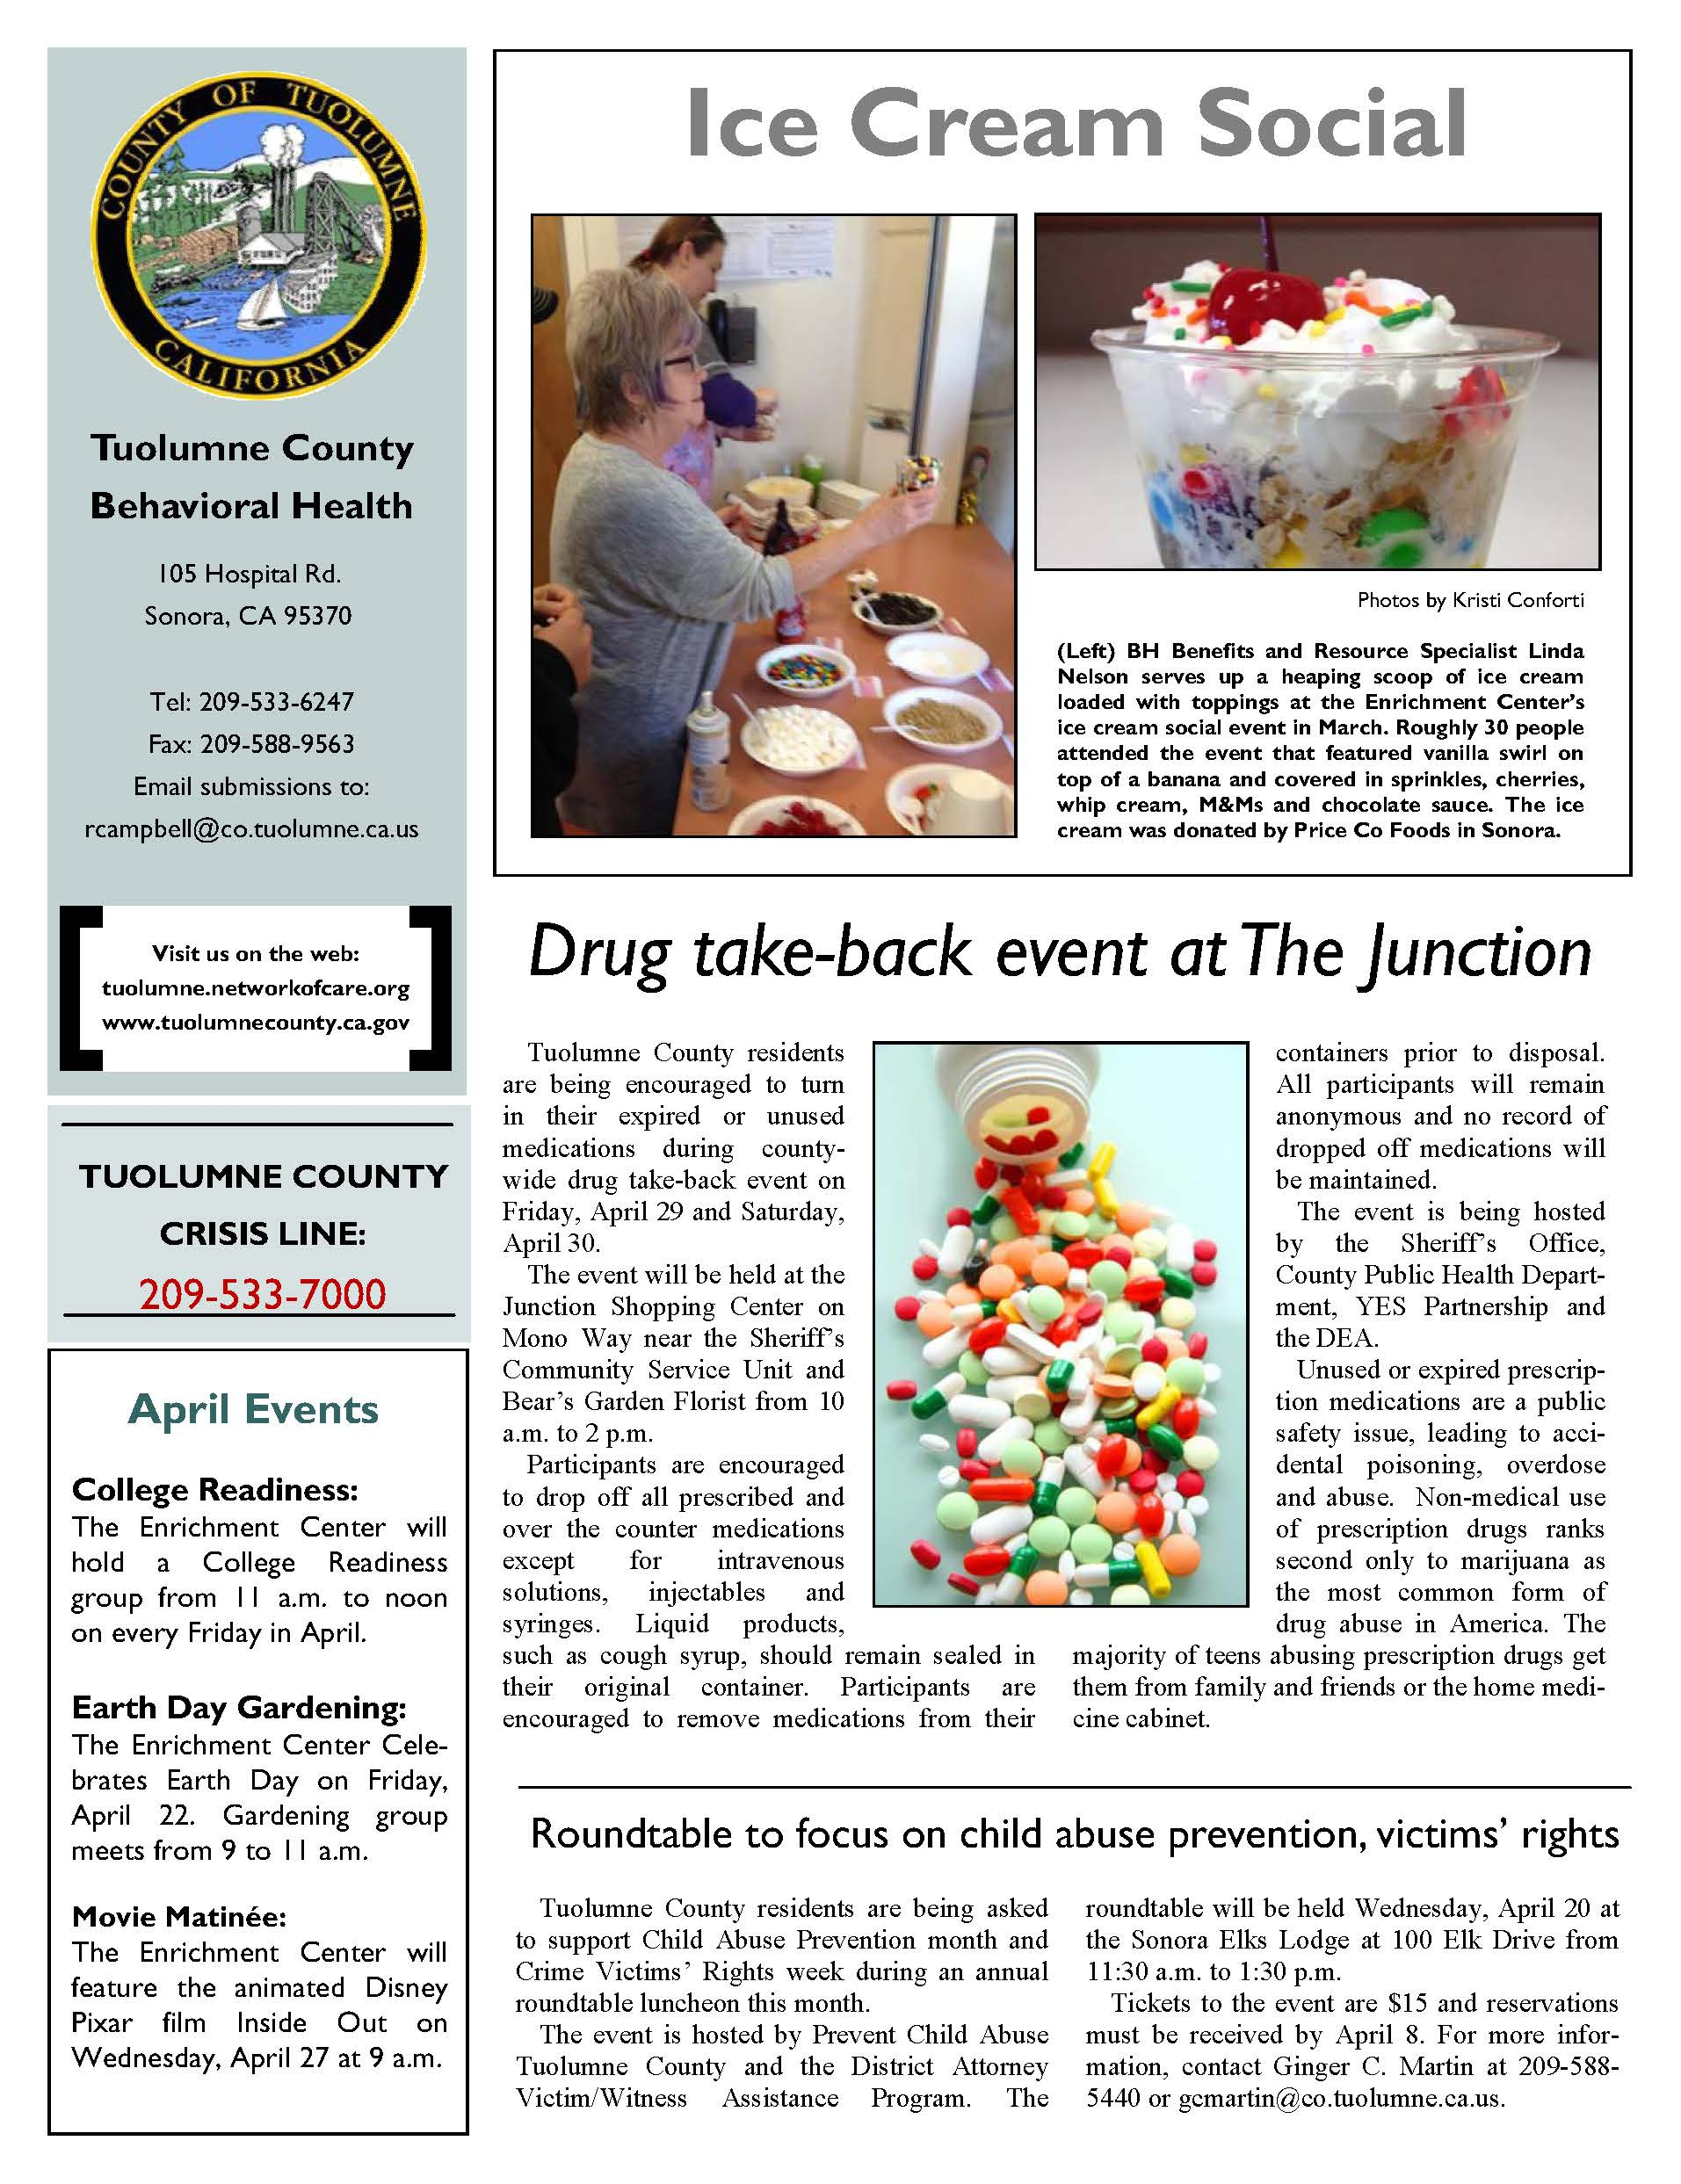 Beh Health April Newsletter Page 2